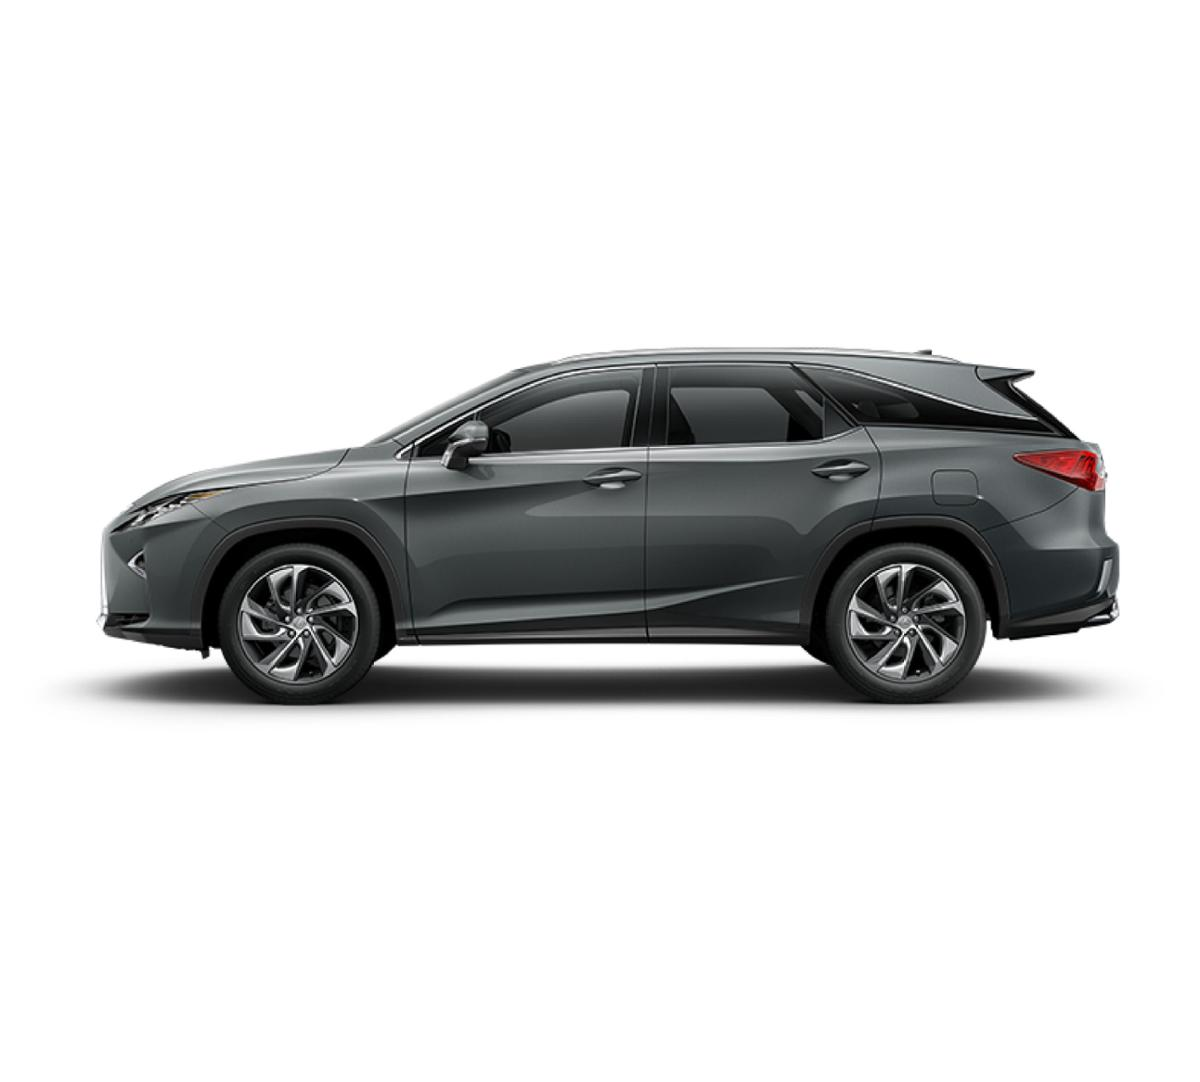 Owings Mills Nebula Gray Pearl 2018 Lexus RX 350L: New Suv